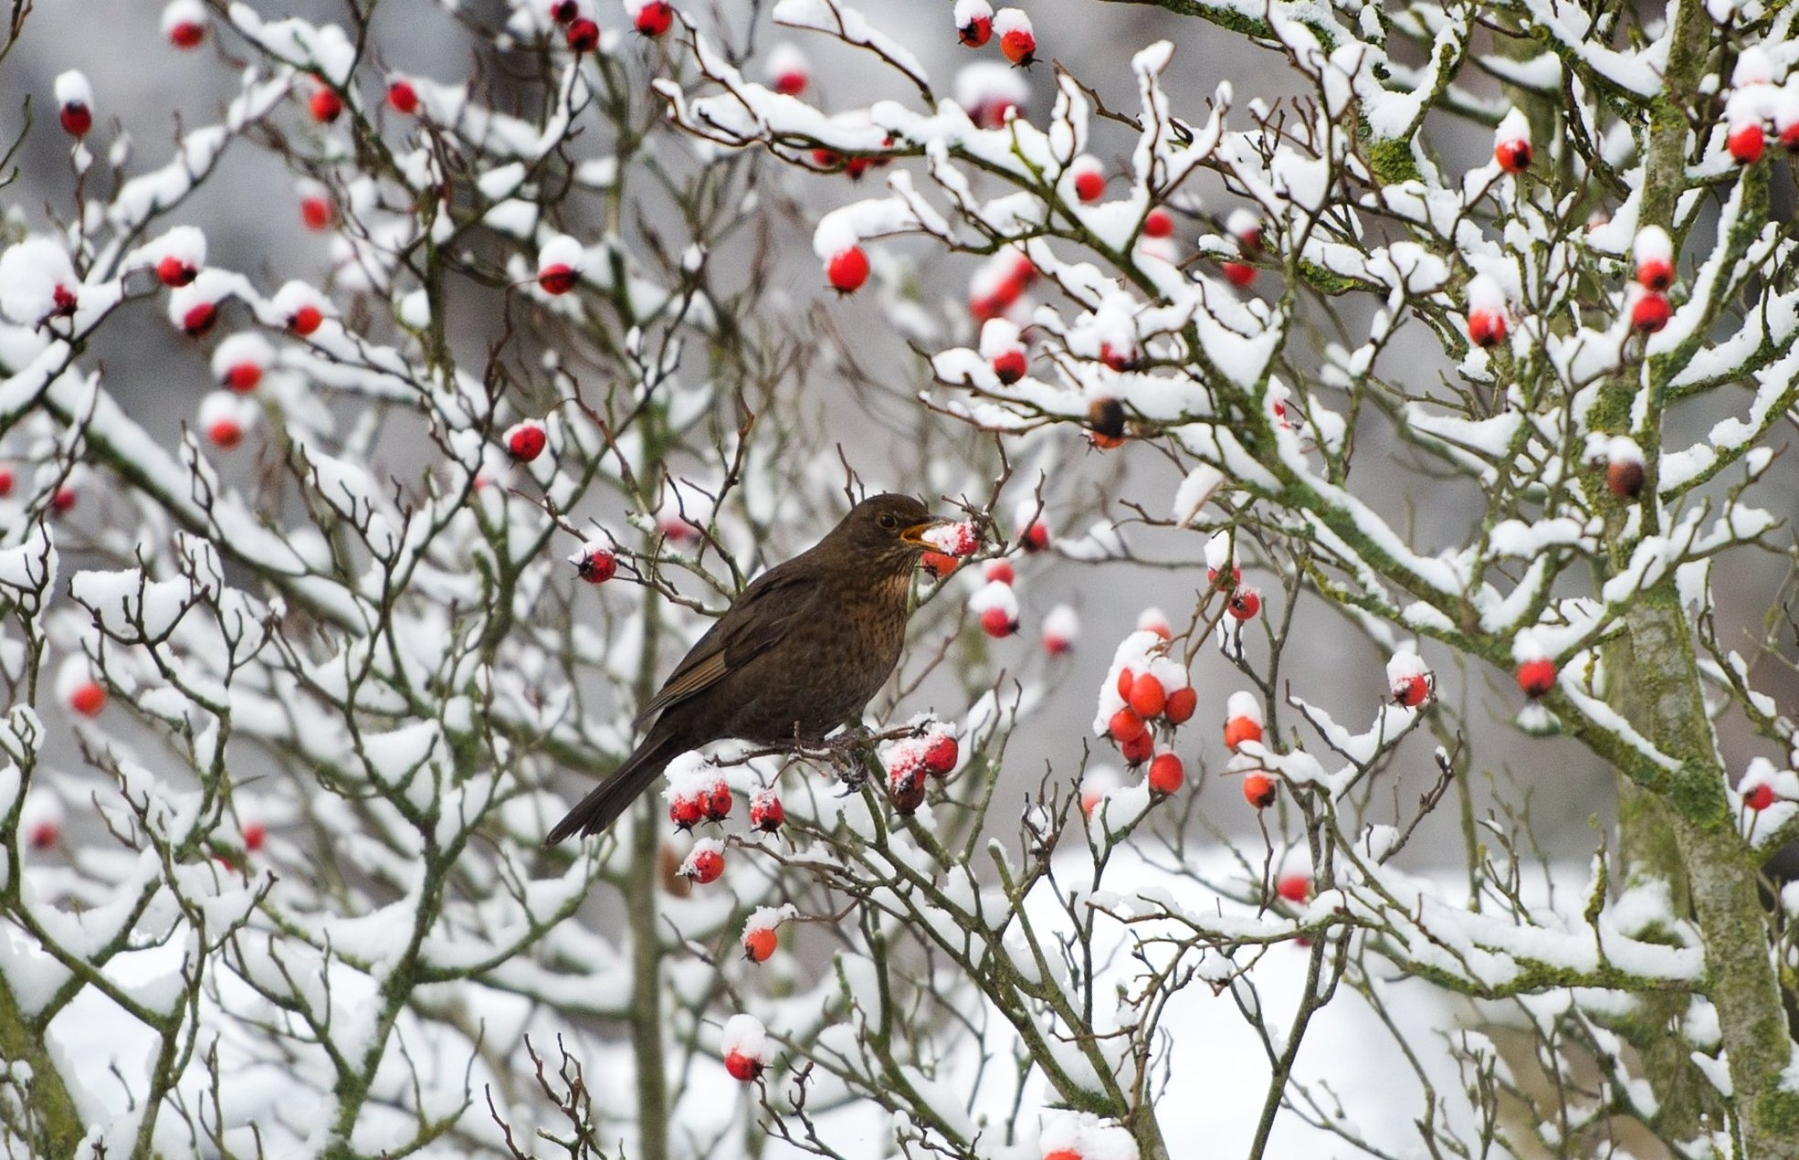 A blackbird picks a rosehip from a snow-covered shrub on January 5, 2017 in Dresden, eastern Germany. Drunk birds in Gilbert, Minnesota have been feeding off fermented berries and causing damage. (Photo by ARNO BURGI/AFP/Getty Images)